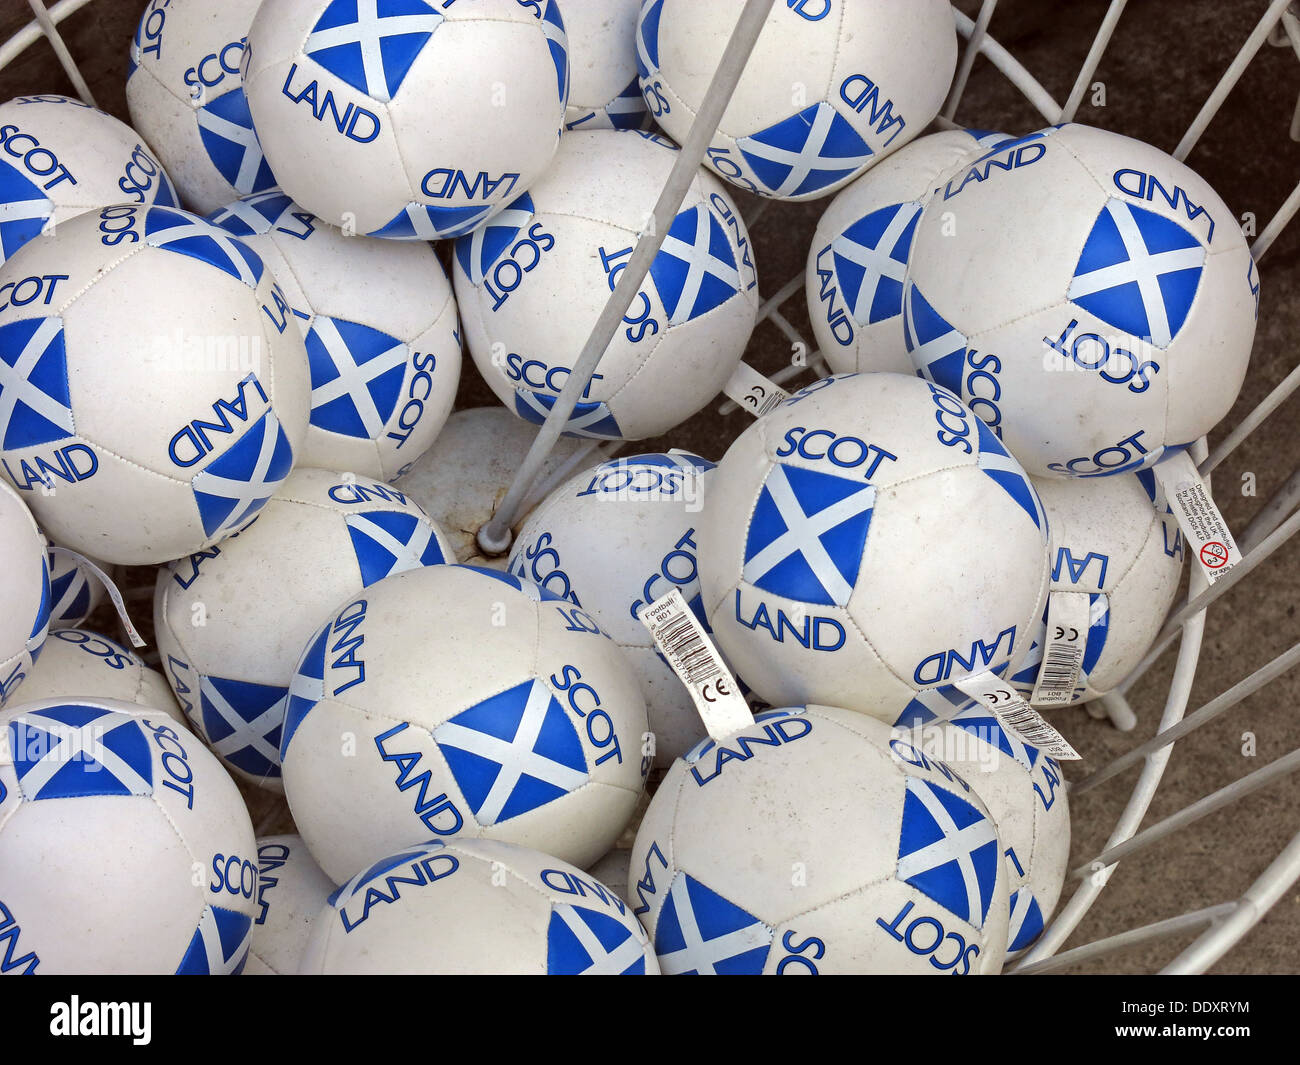 Scottish /Scotland balls to independence - Stock Image